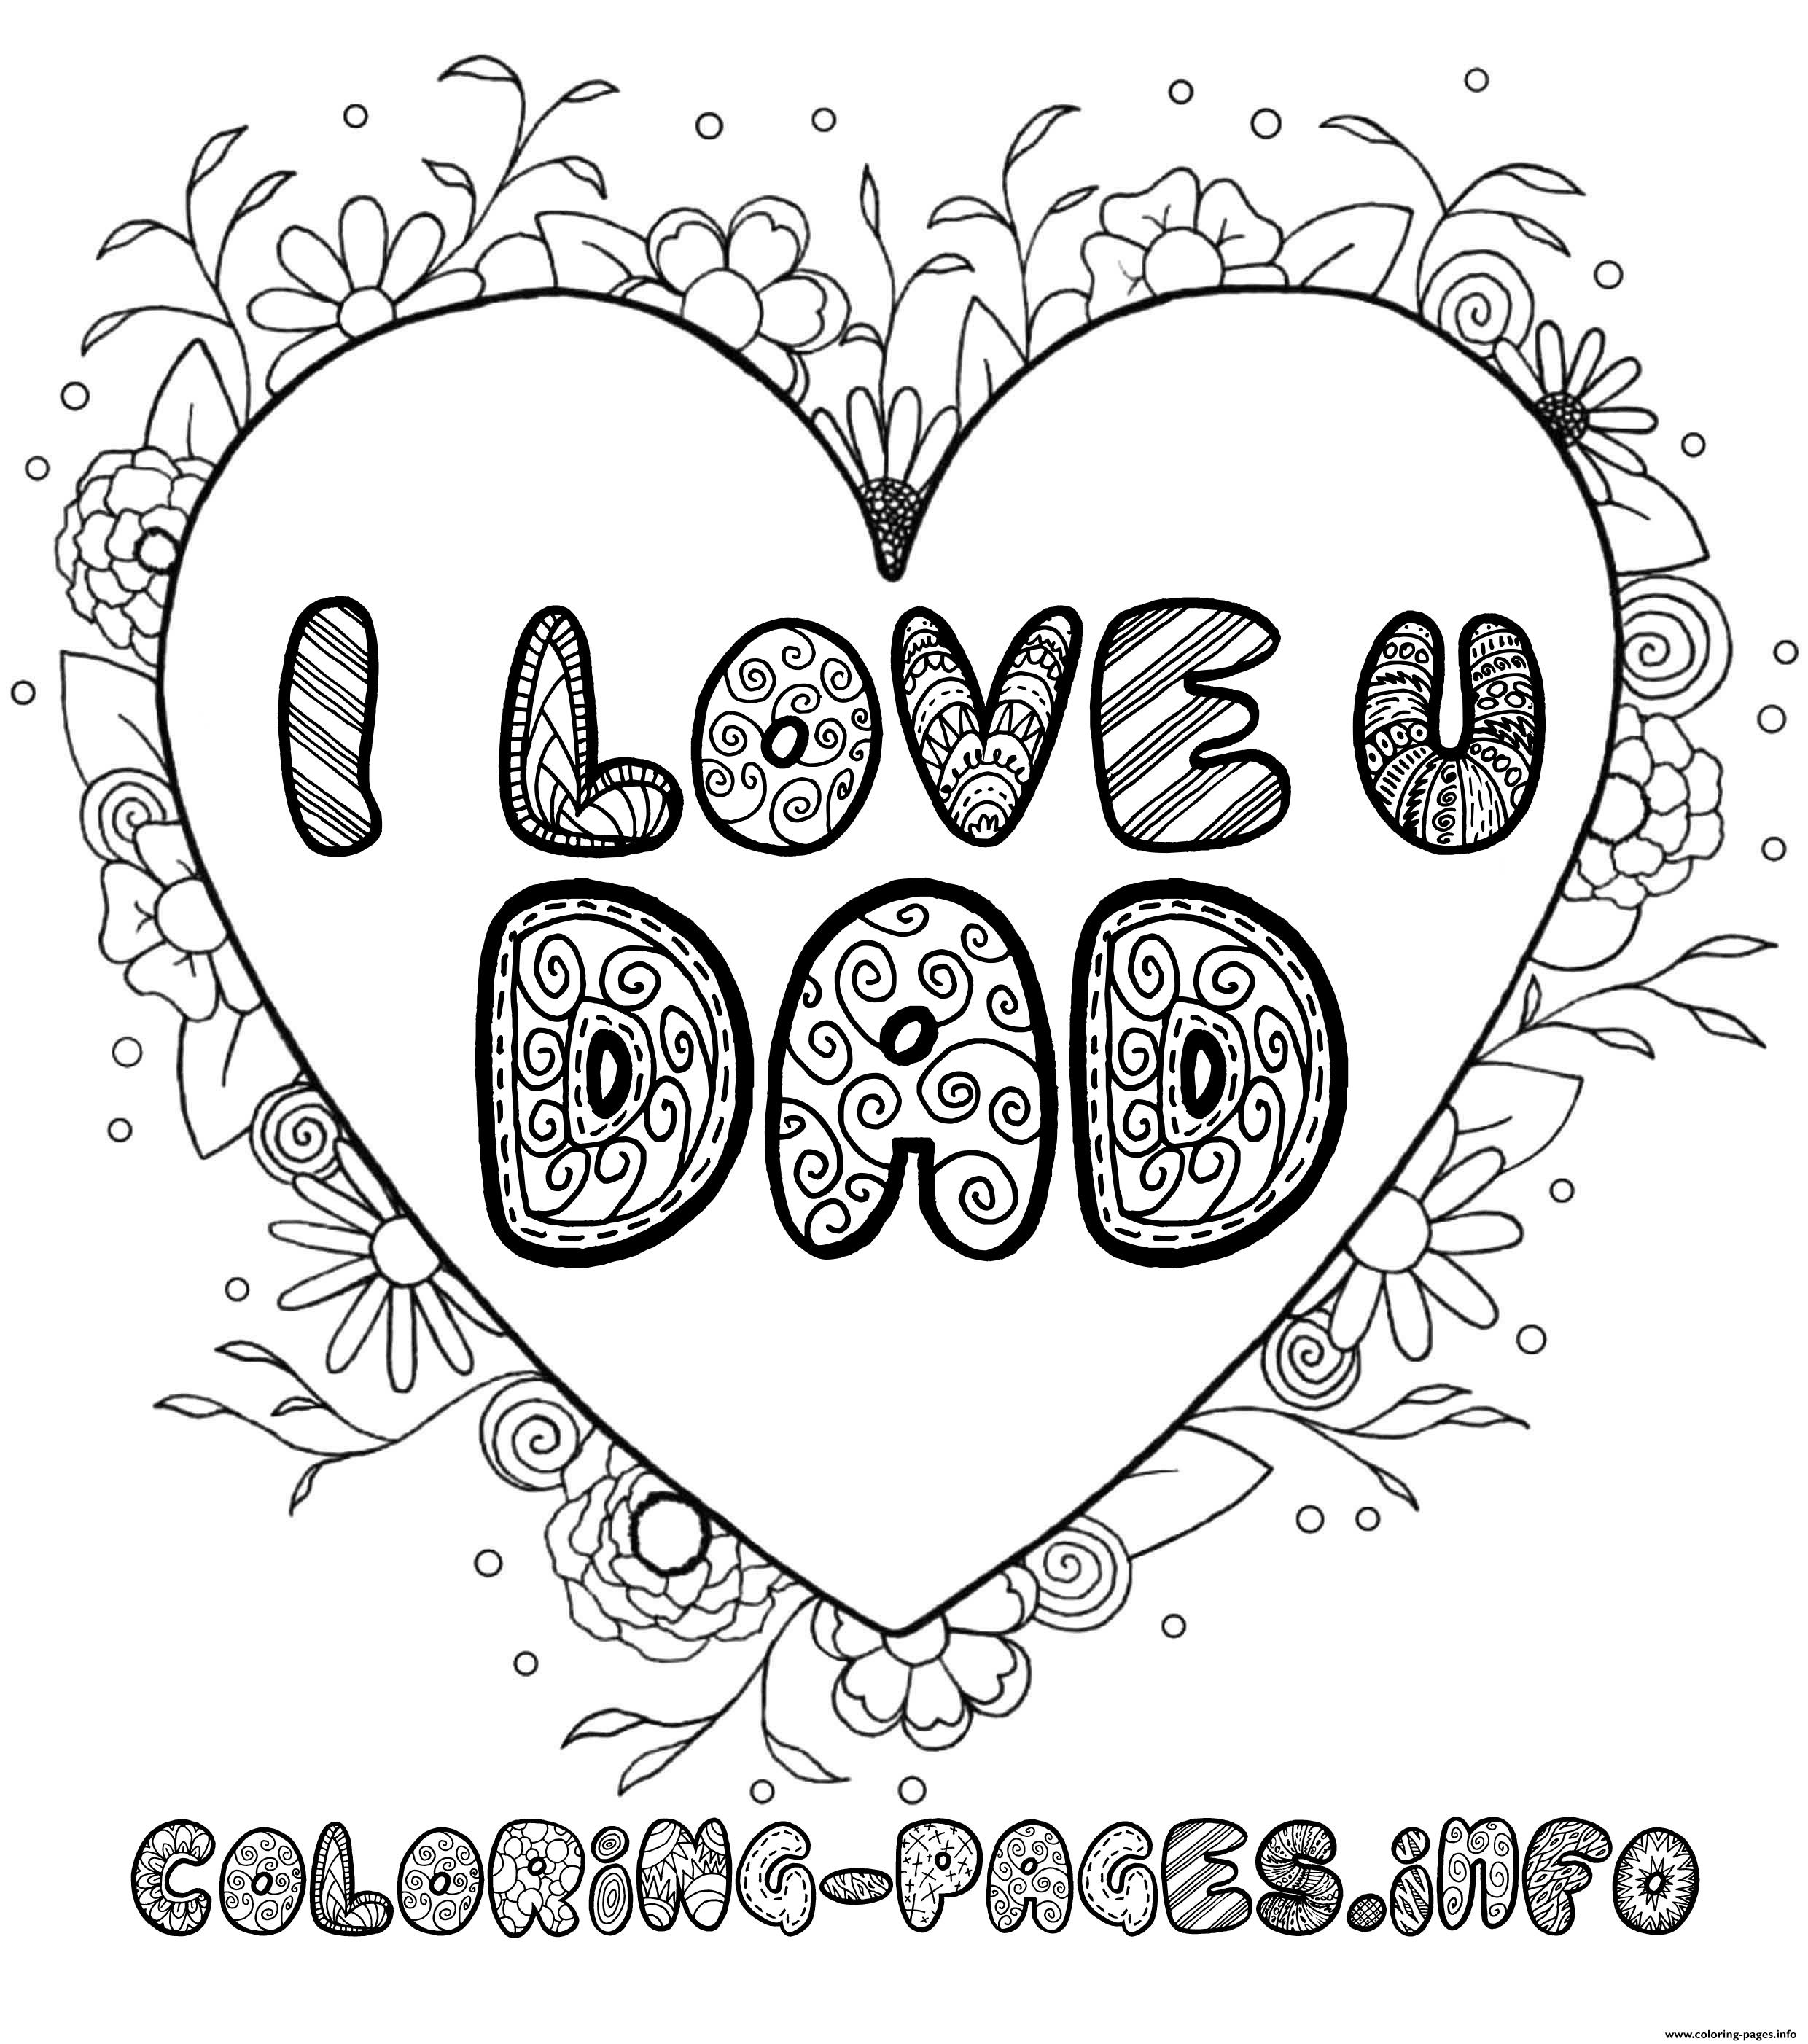 love daddy coloring pages - photo#23